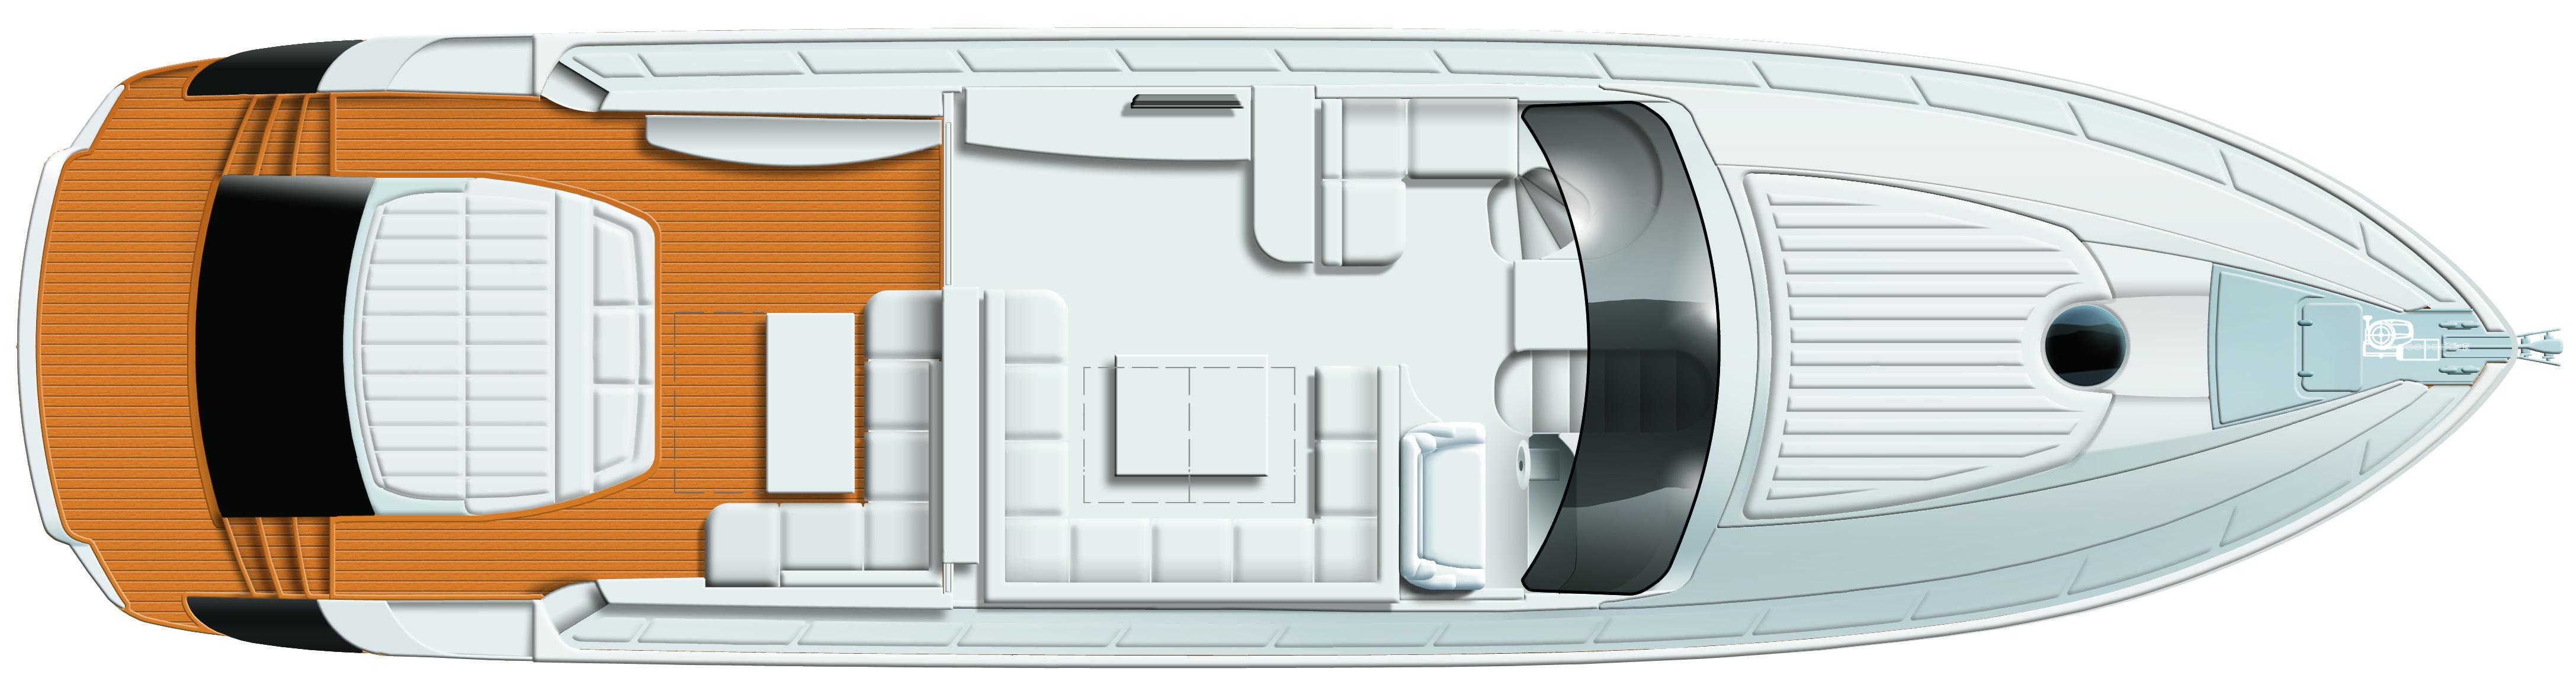 Manufacturer Provided Image: Pershing 64 Upper Deck Layout Plan